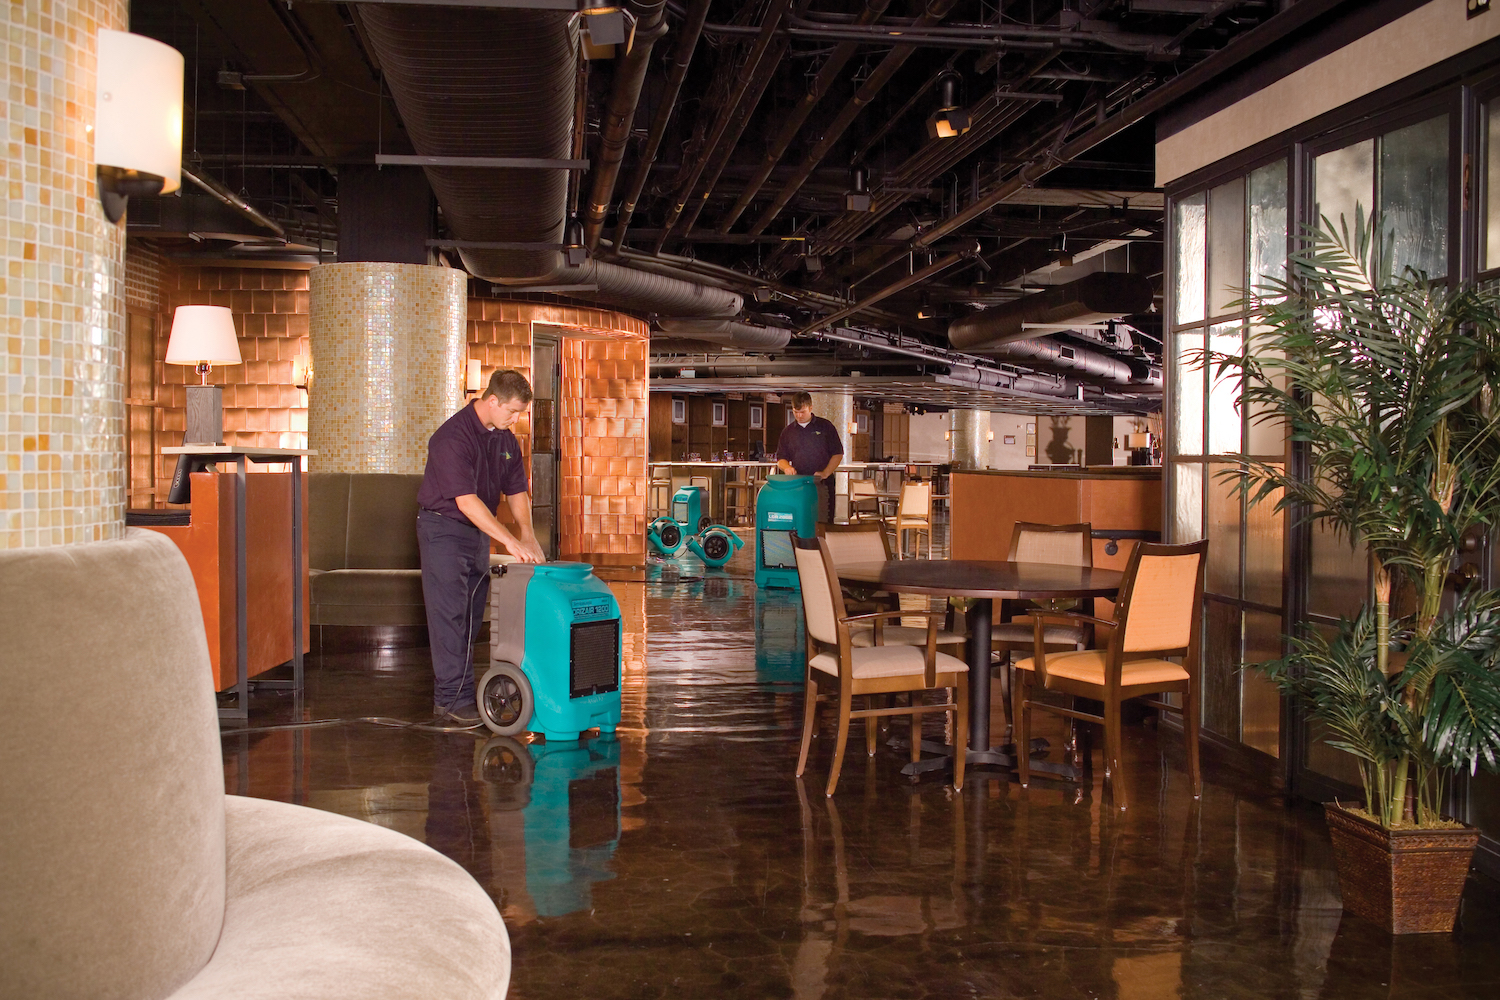 Water and Flood Damage Cleanup services in Alameda County, East Bay Area, CA